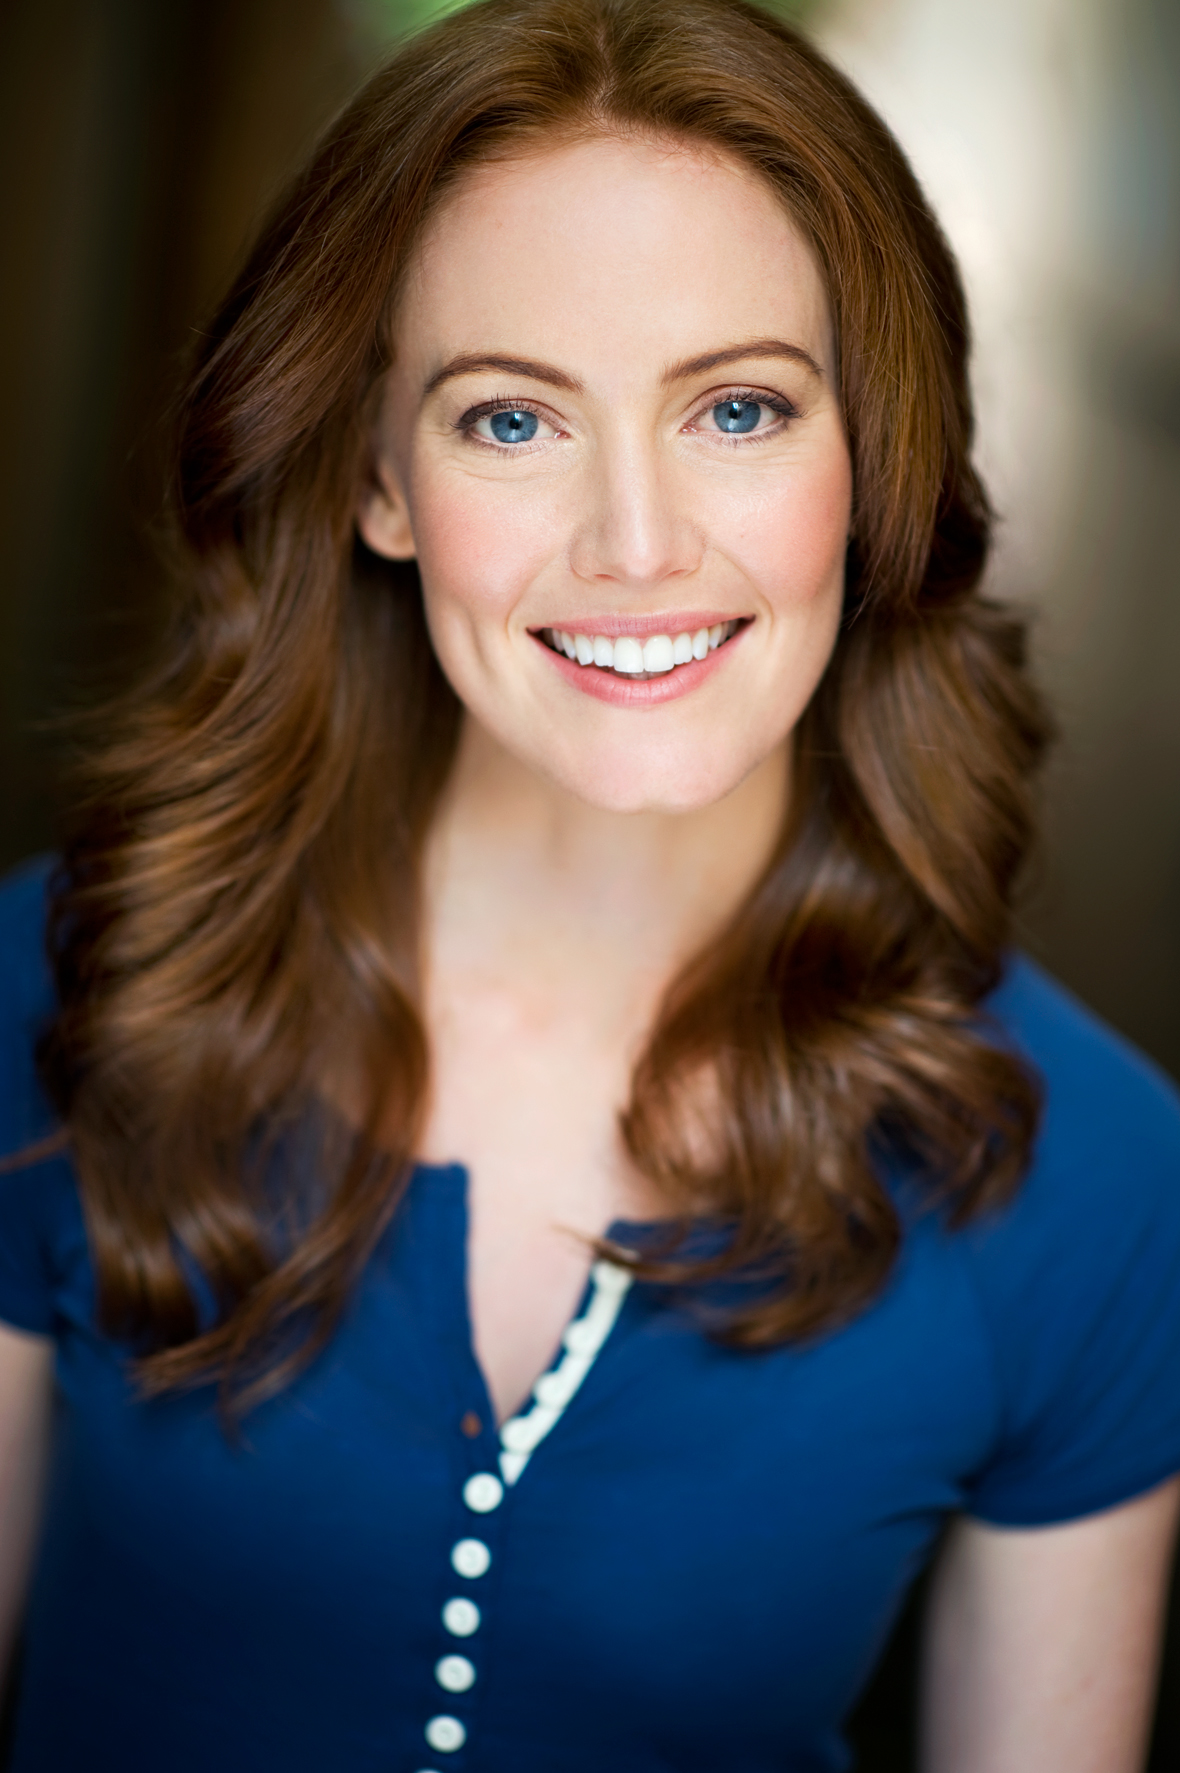 Danielle Brewer Commercial Headshot